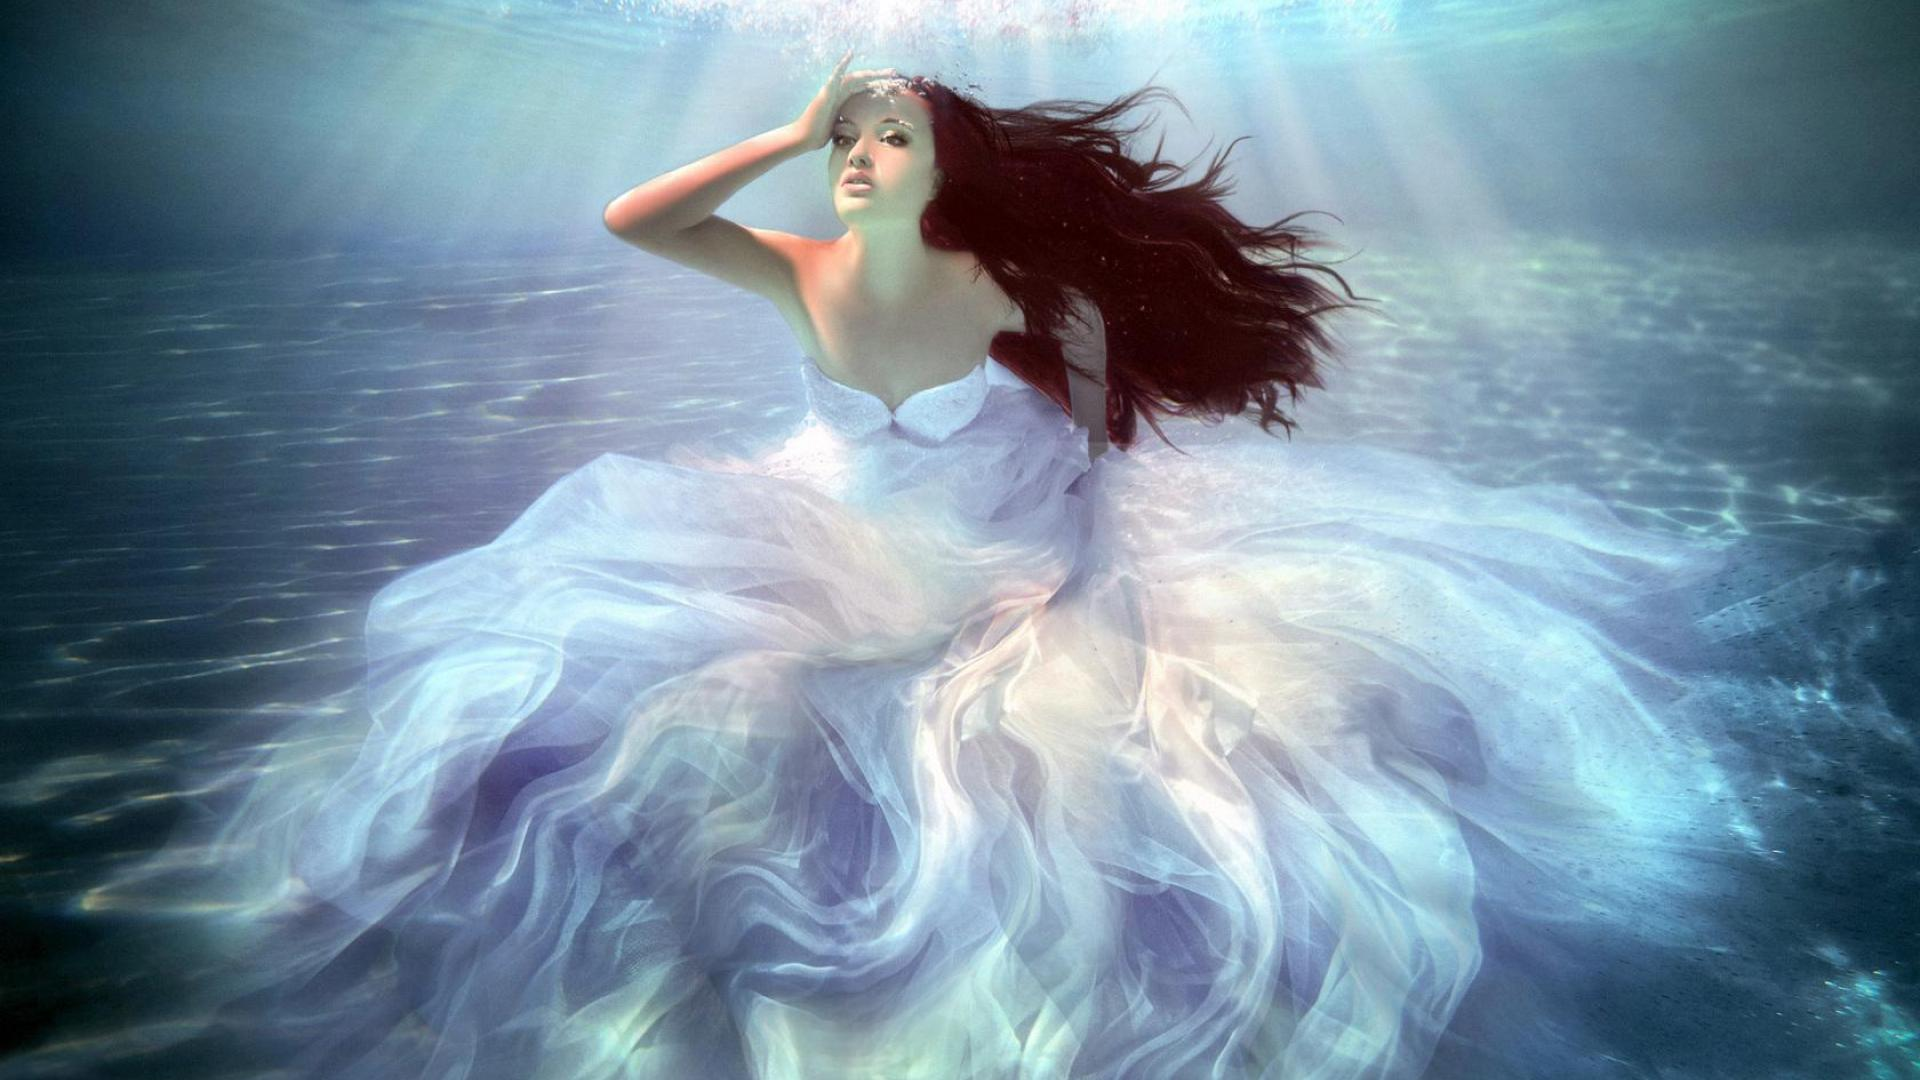 3d mermaid wallpaper - wallpapersafari